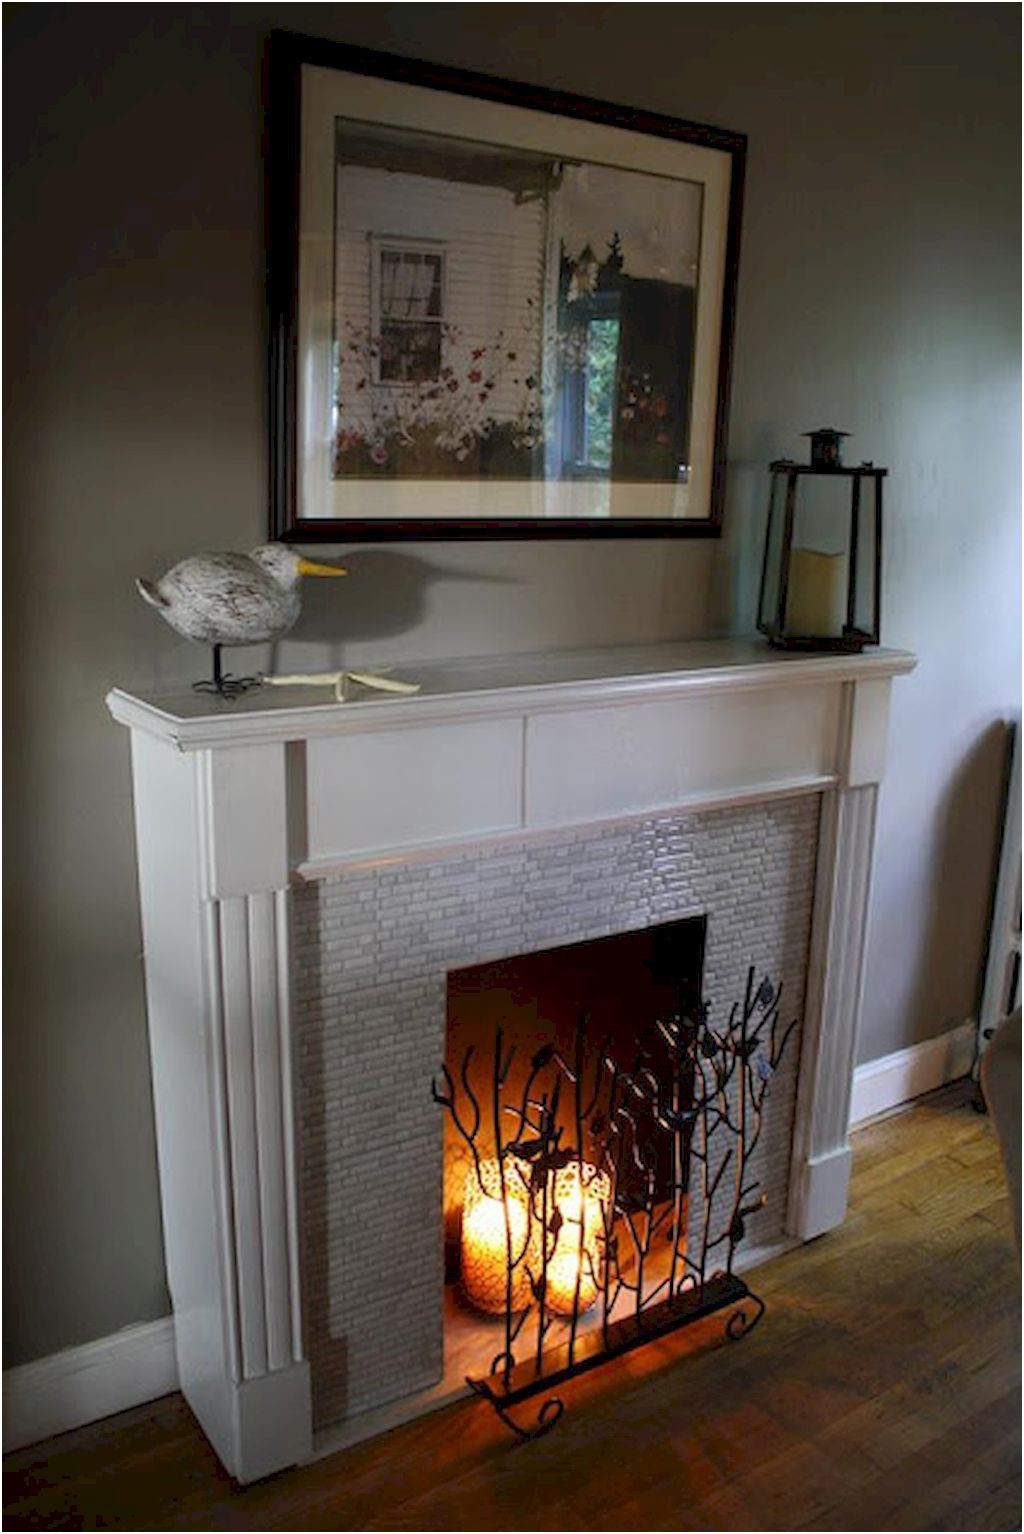 Ideas to Cover Fireplace Unique 70 Gorgeous Apartment Fireplace Decorating Ideas